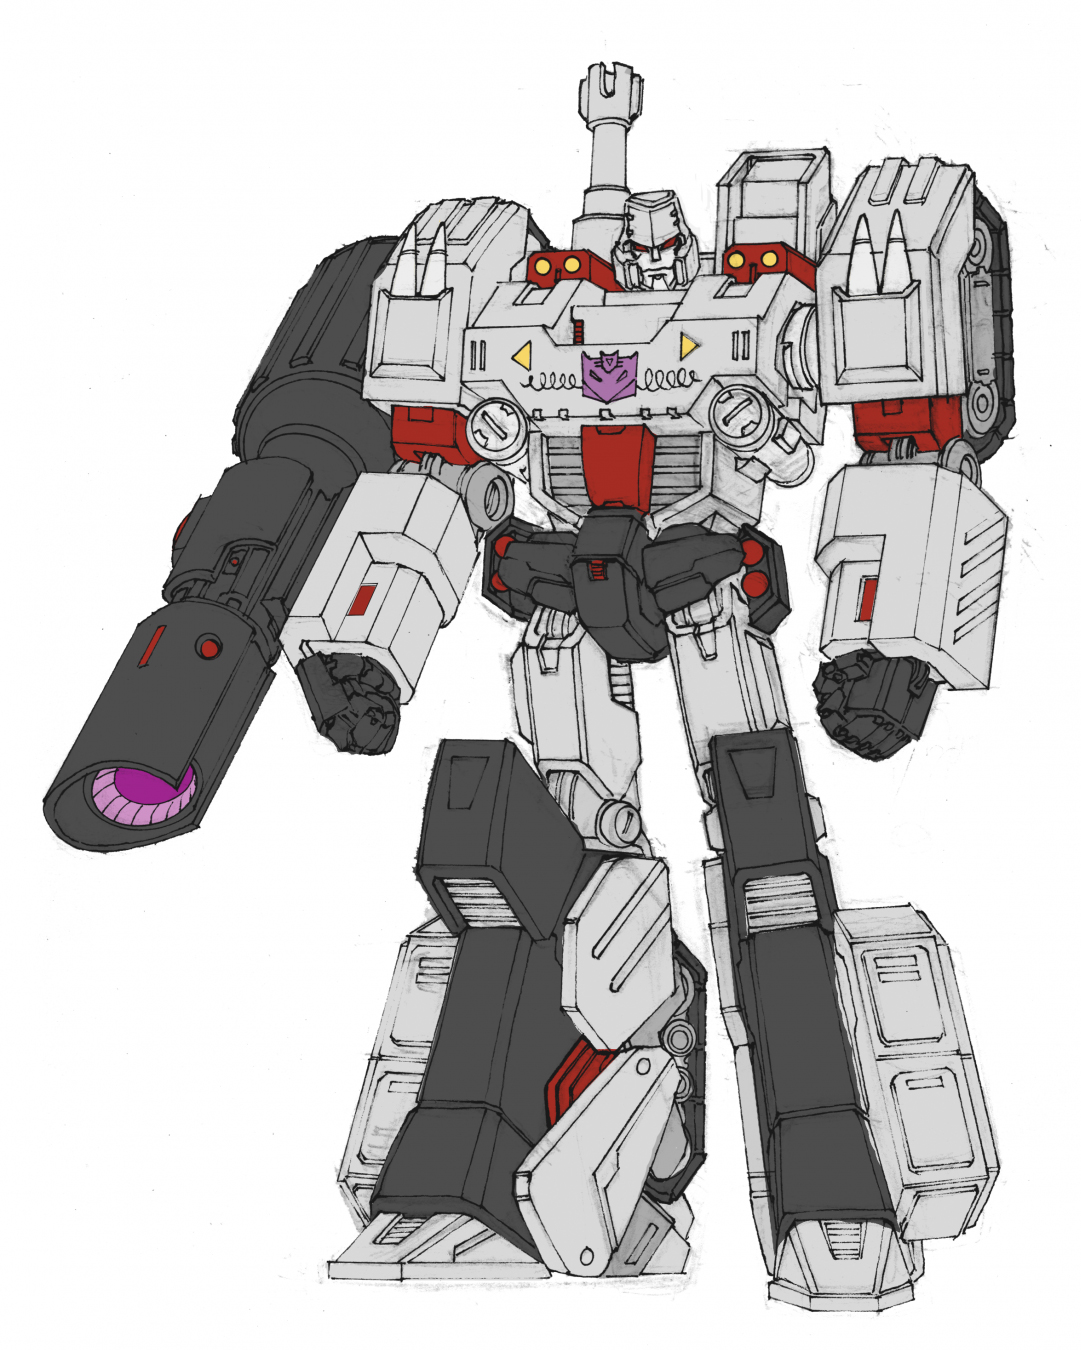 ... Alt-mode in Transformers More Than Meets The Eye? SPOILERS